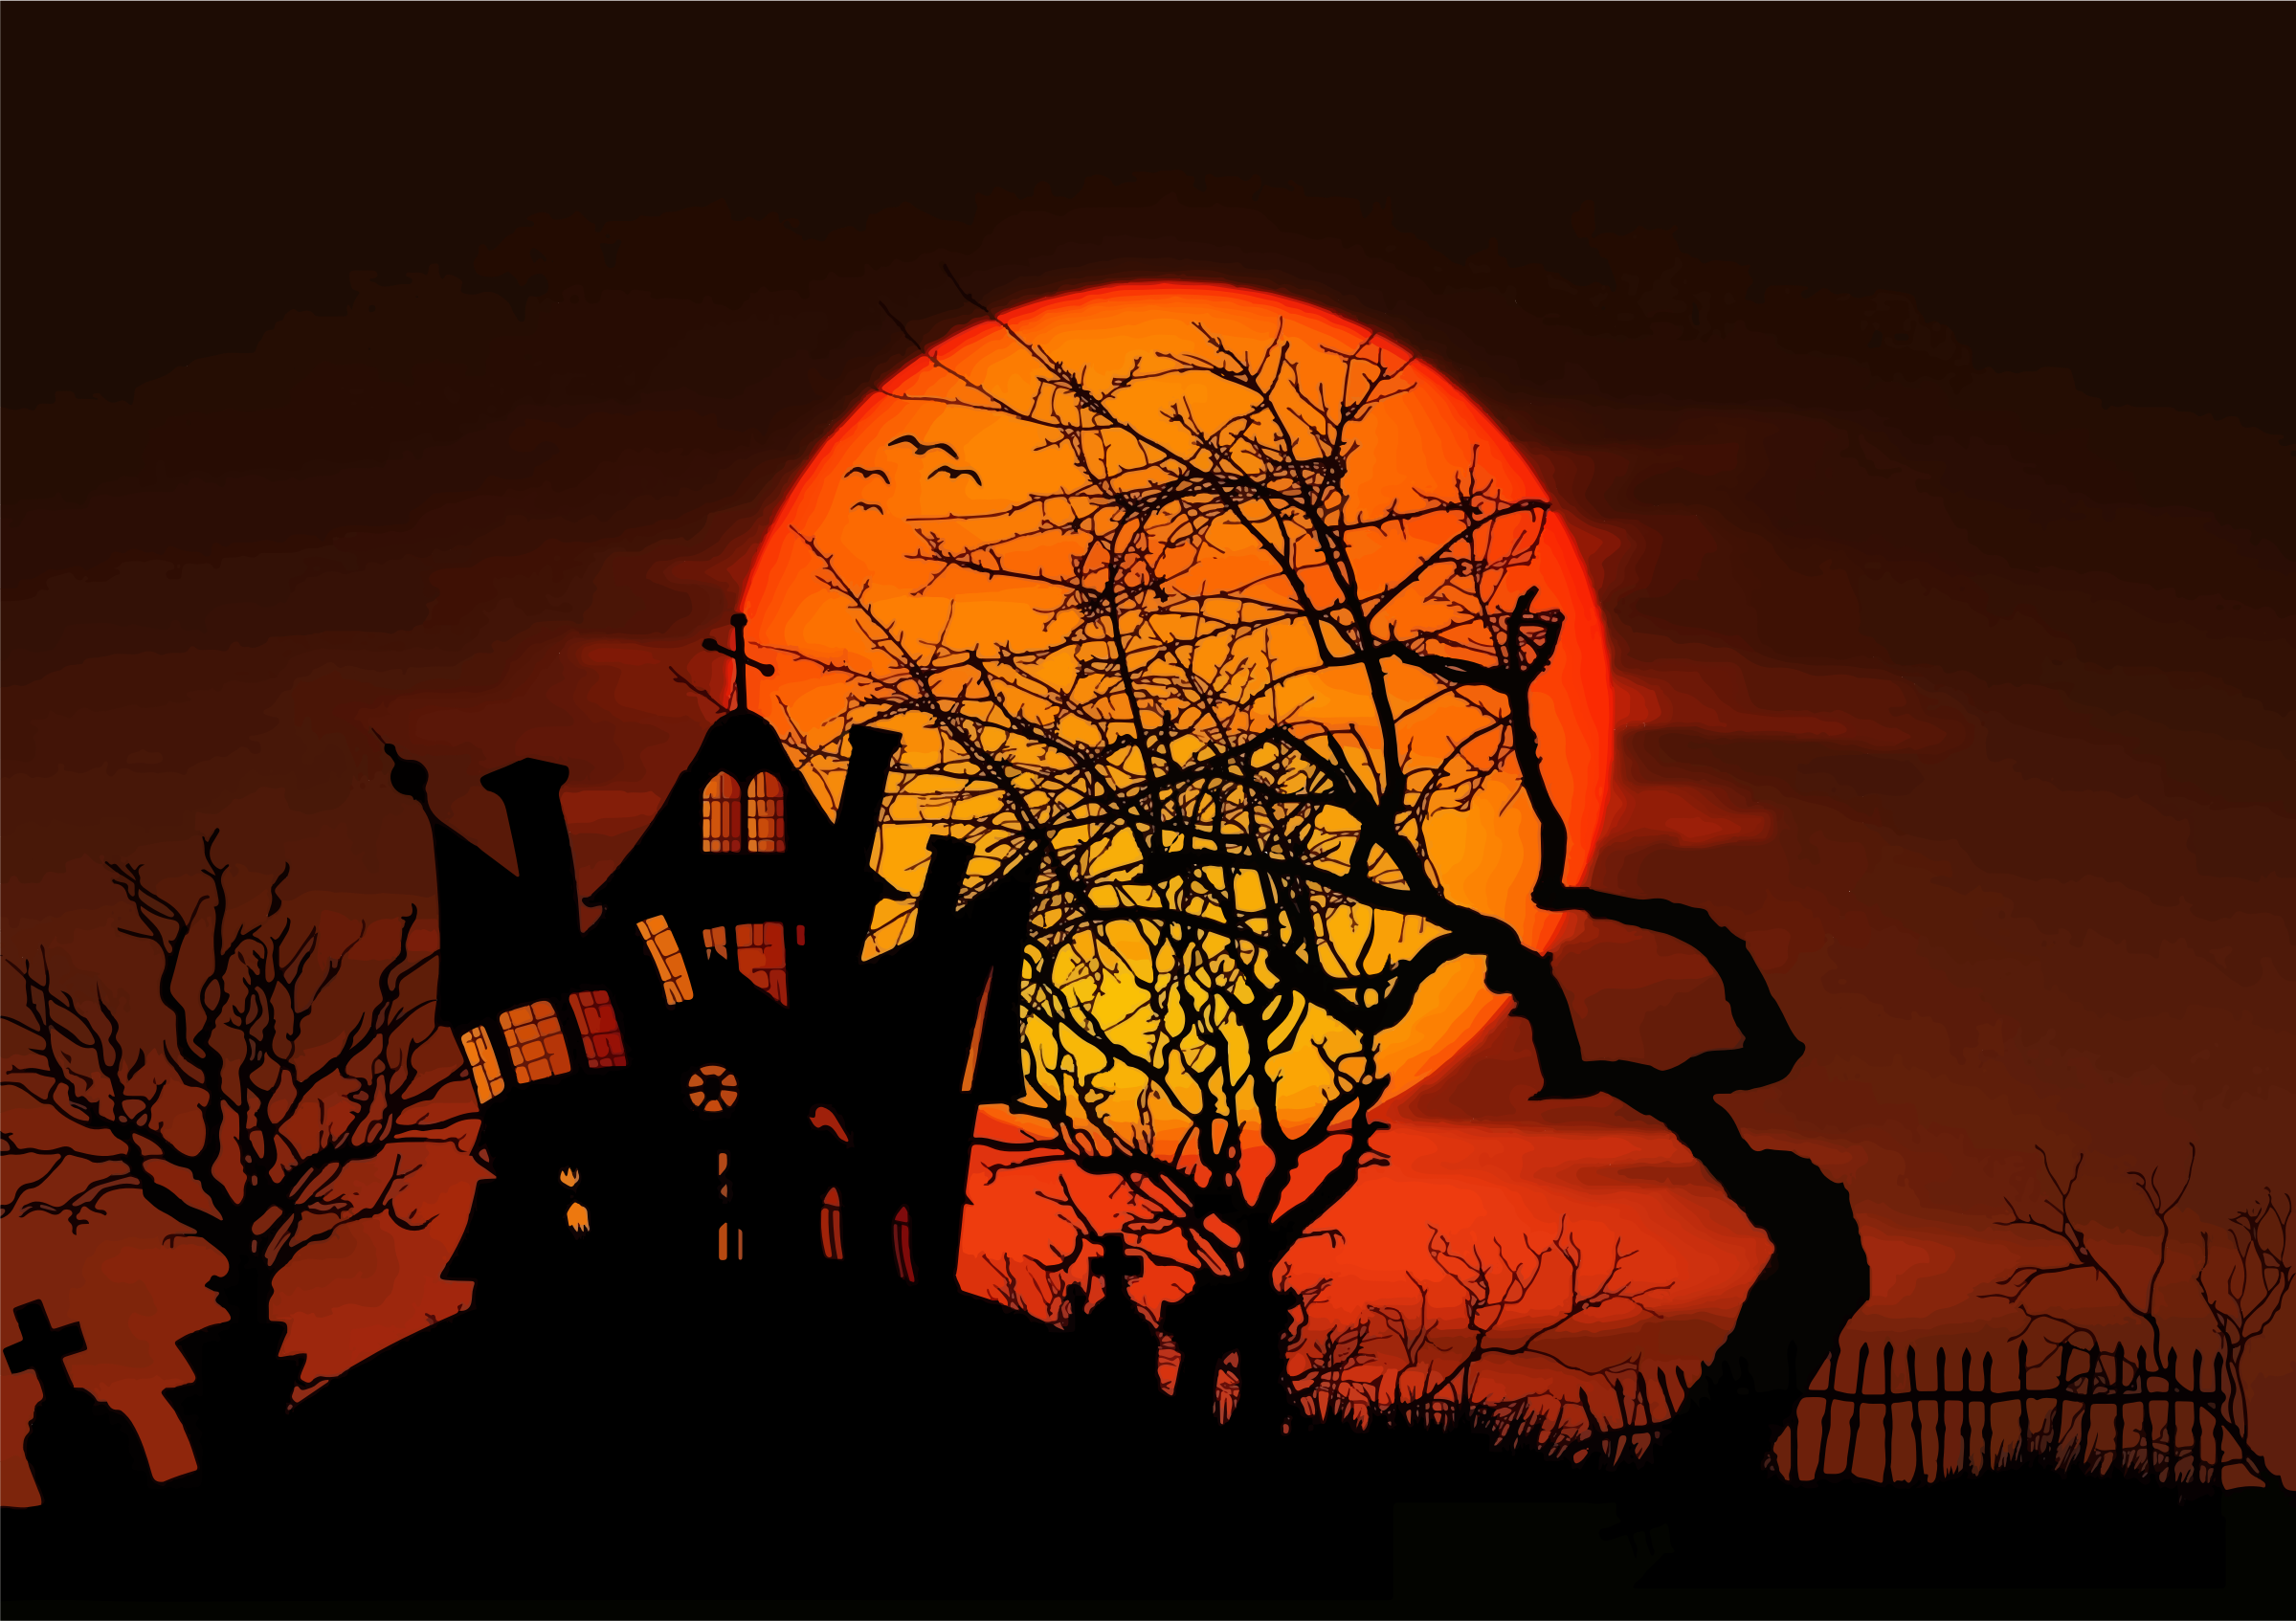 Haunted House Moonlight Silhouette by GDJ